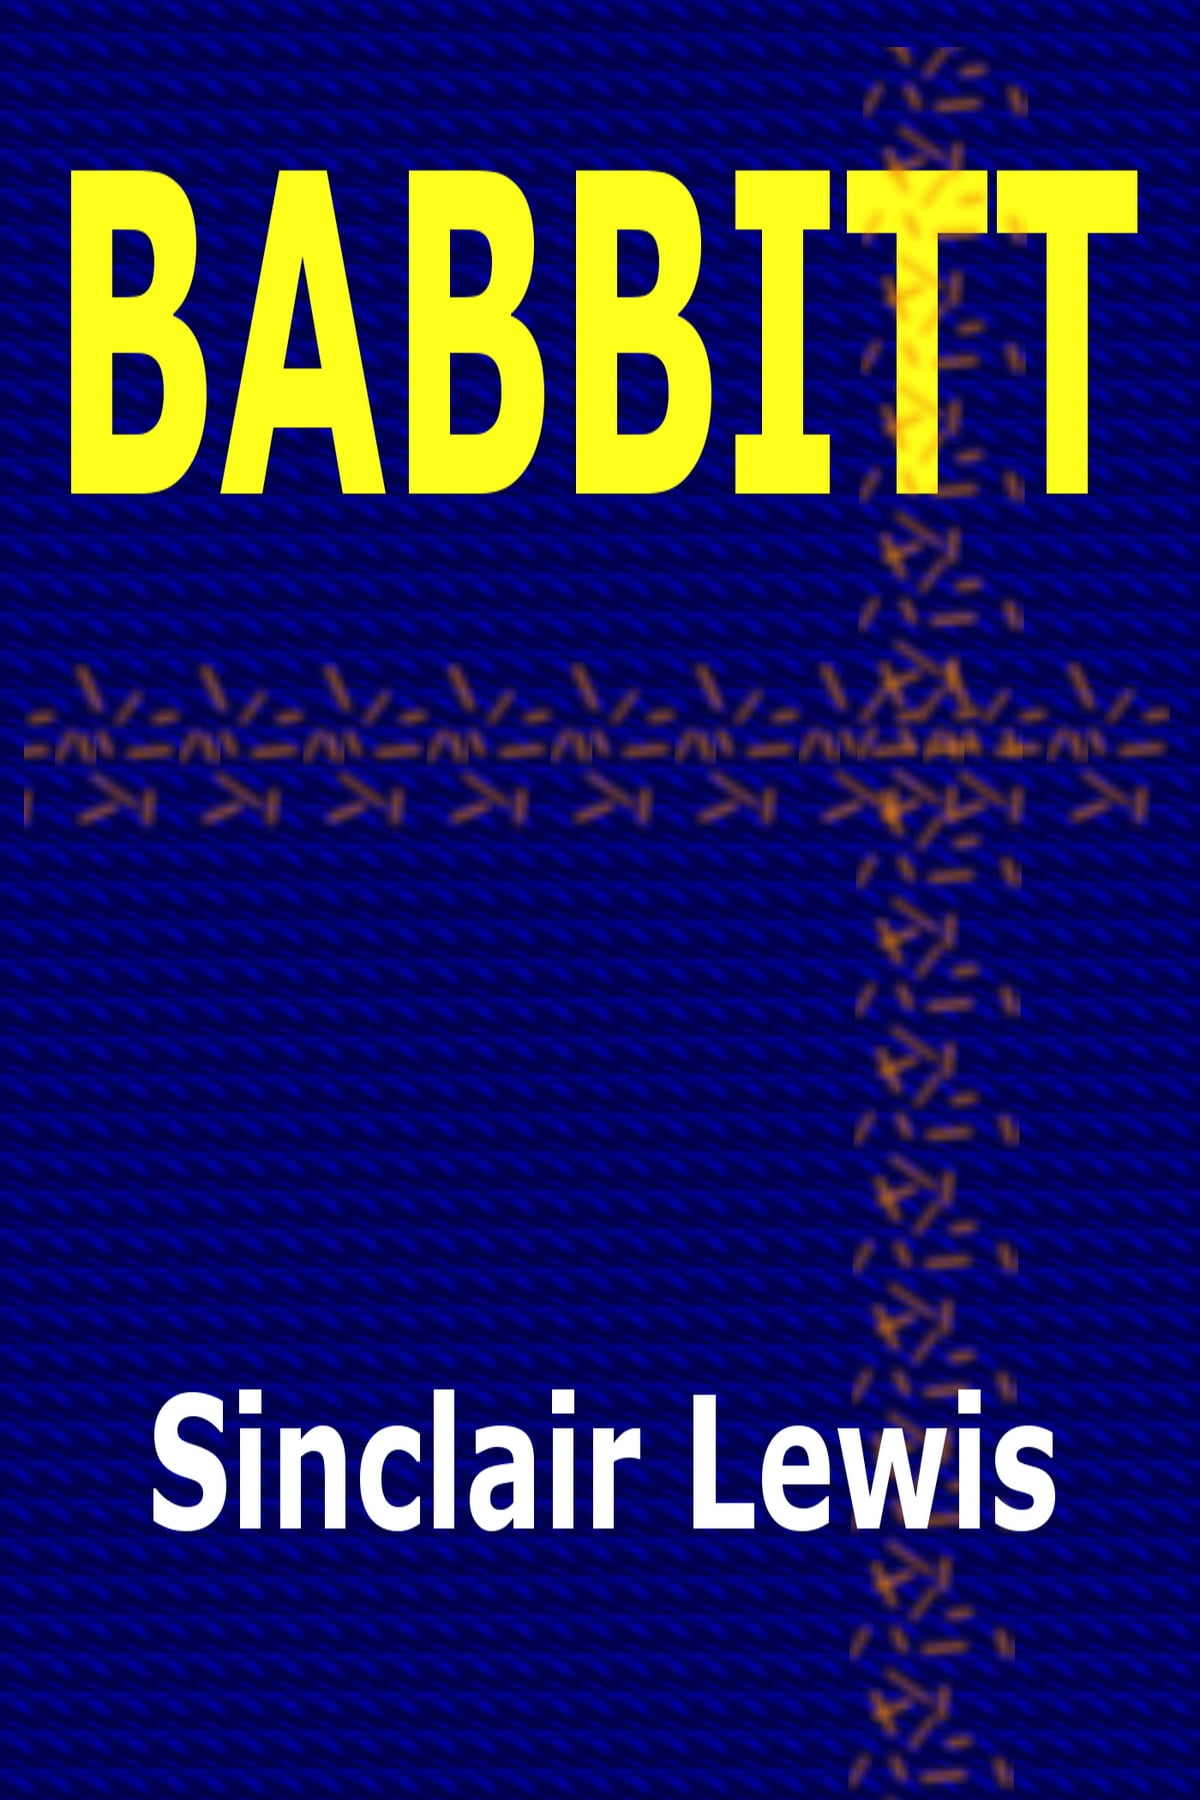 comparing satire in babbitt by sinclair lewis 104070 structural requirements : issue handling essay best paper writing service essay in urdu, comparing satire in babbitt by sinclair lewis and the simpsons essay, causes and effects of currency crises in thailand essay organisations include dynamic and complex characters management essay, my hero: my dad essay.